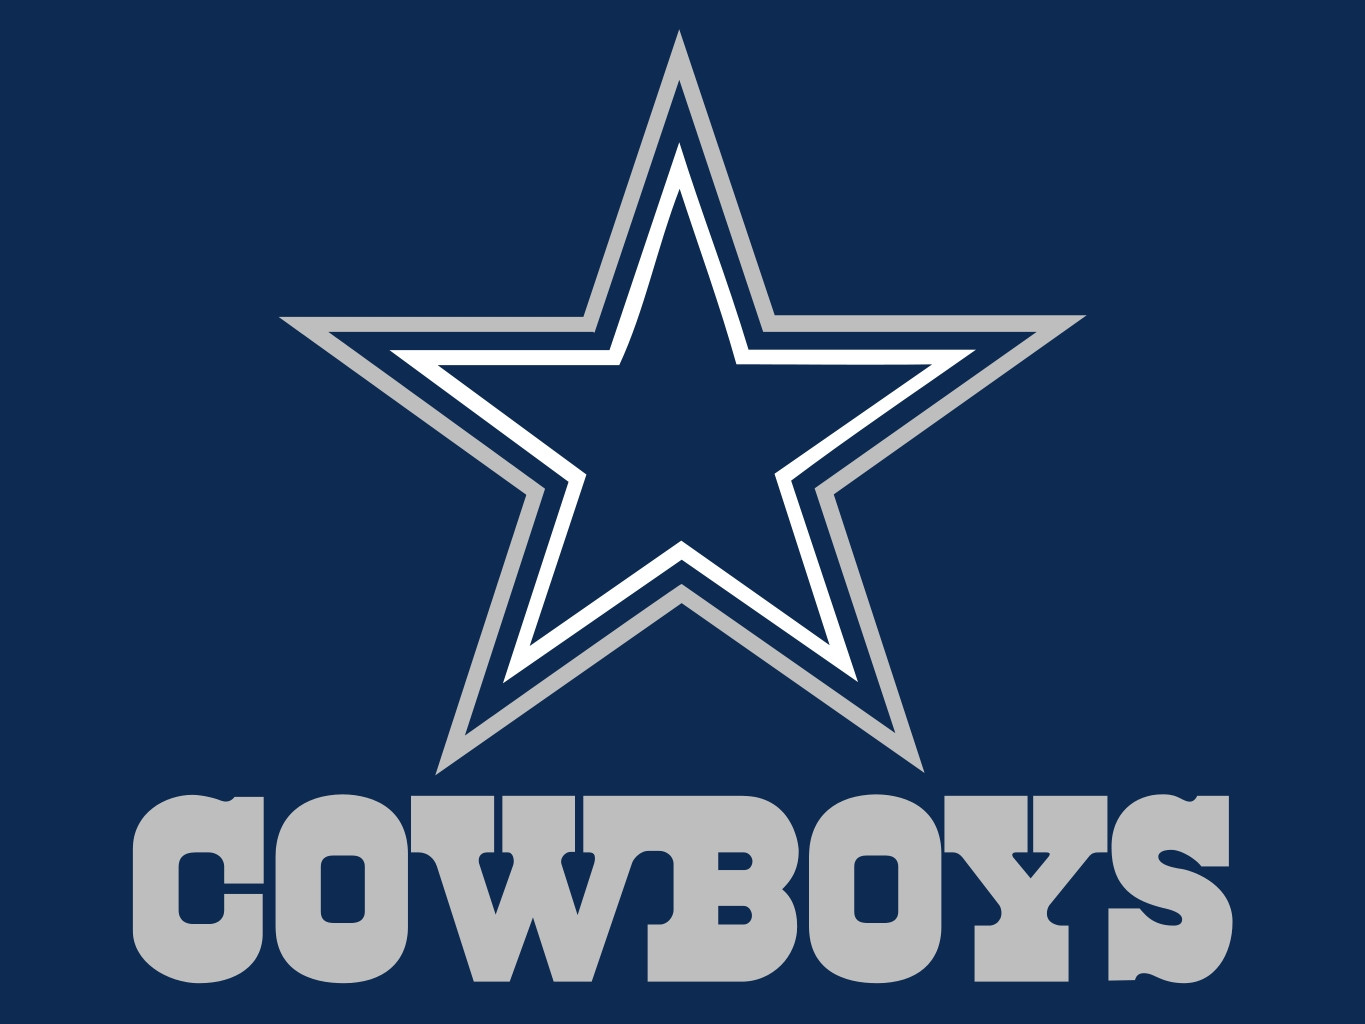 Dallas cowboys clipart official. Awesome logos transparent